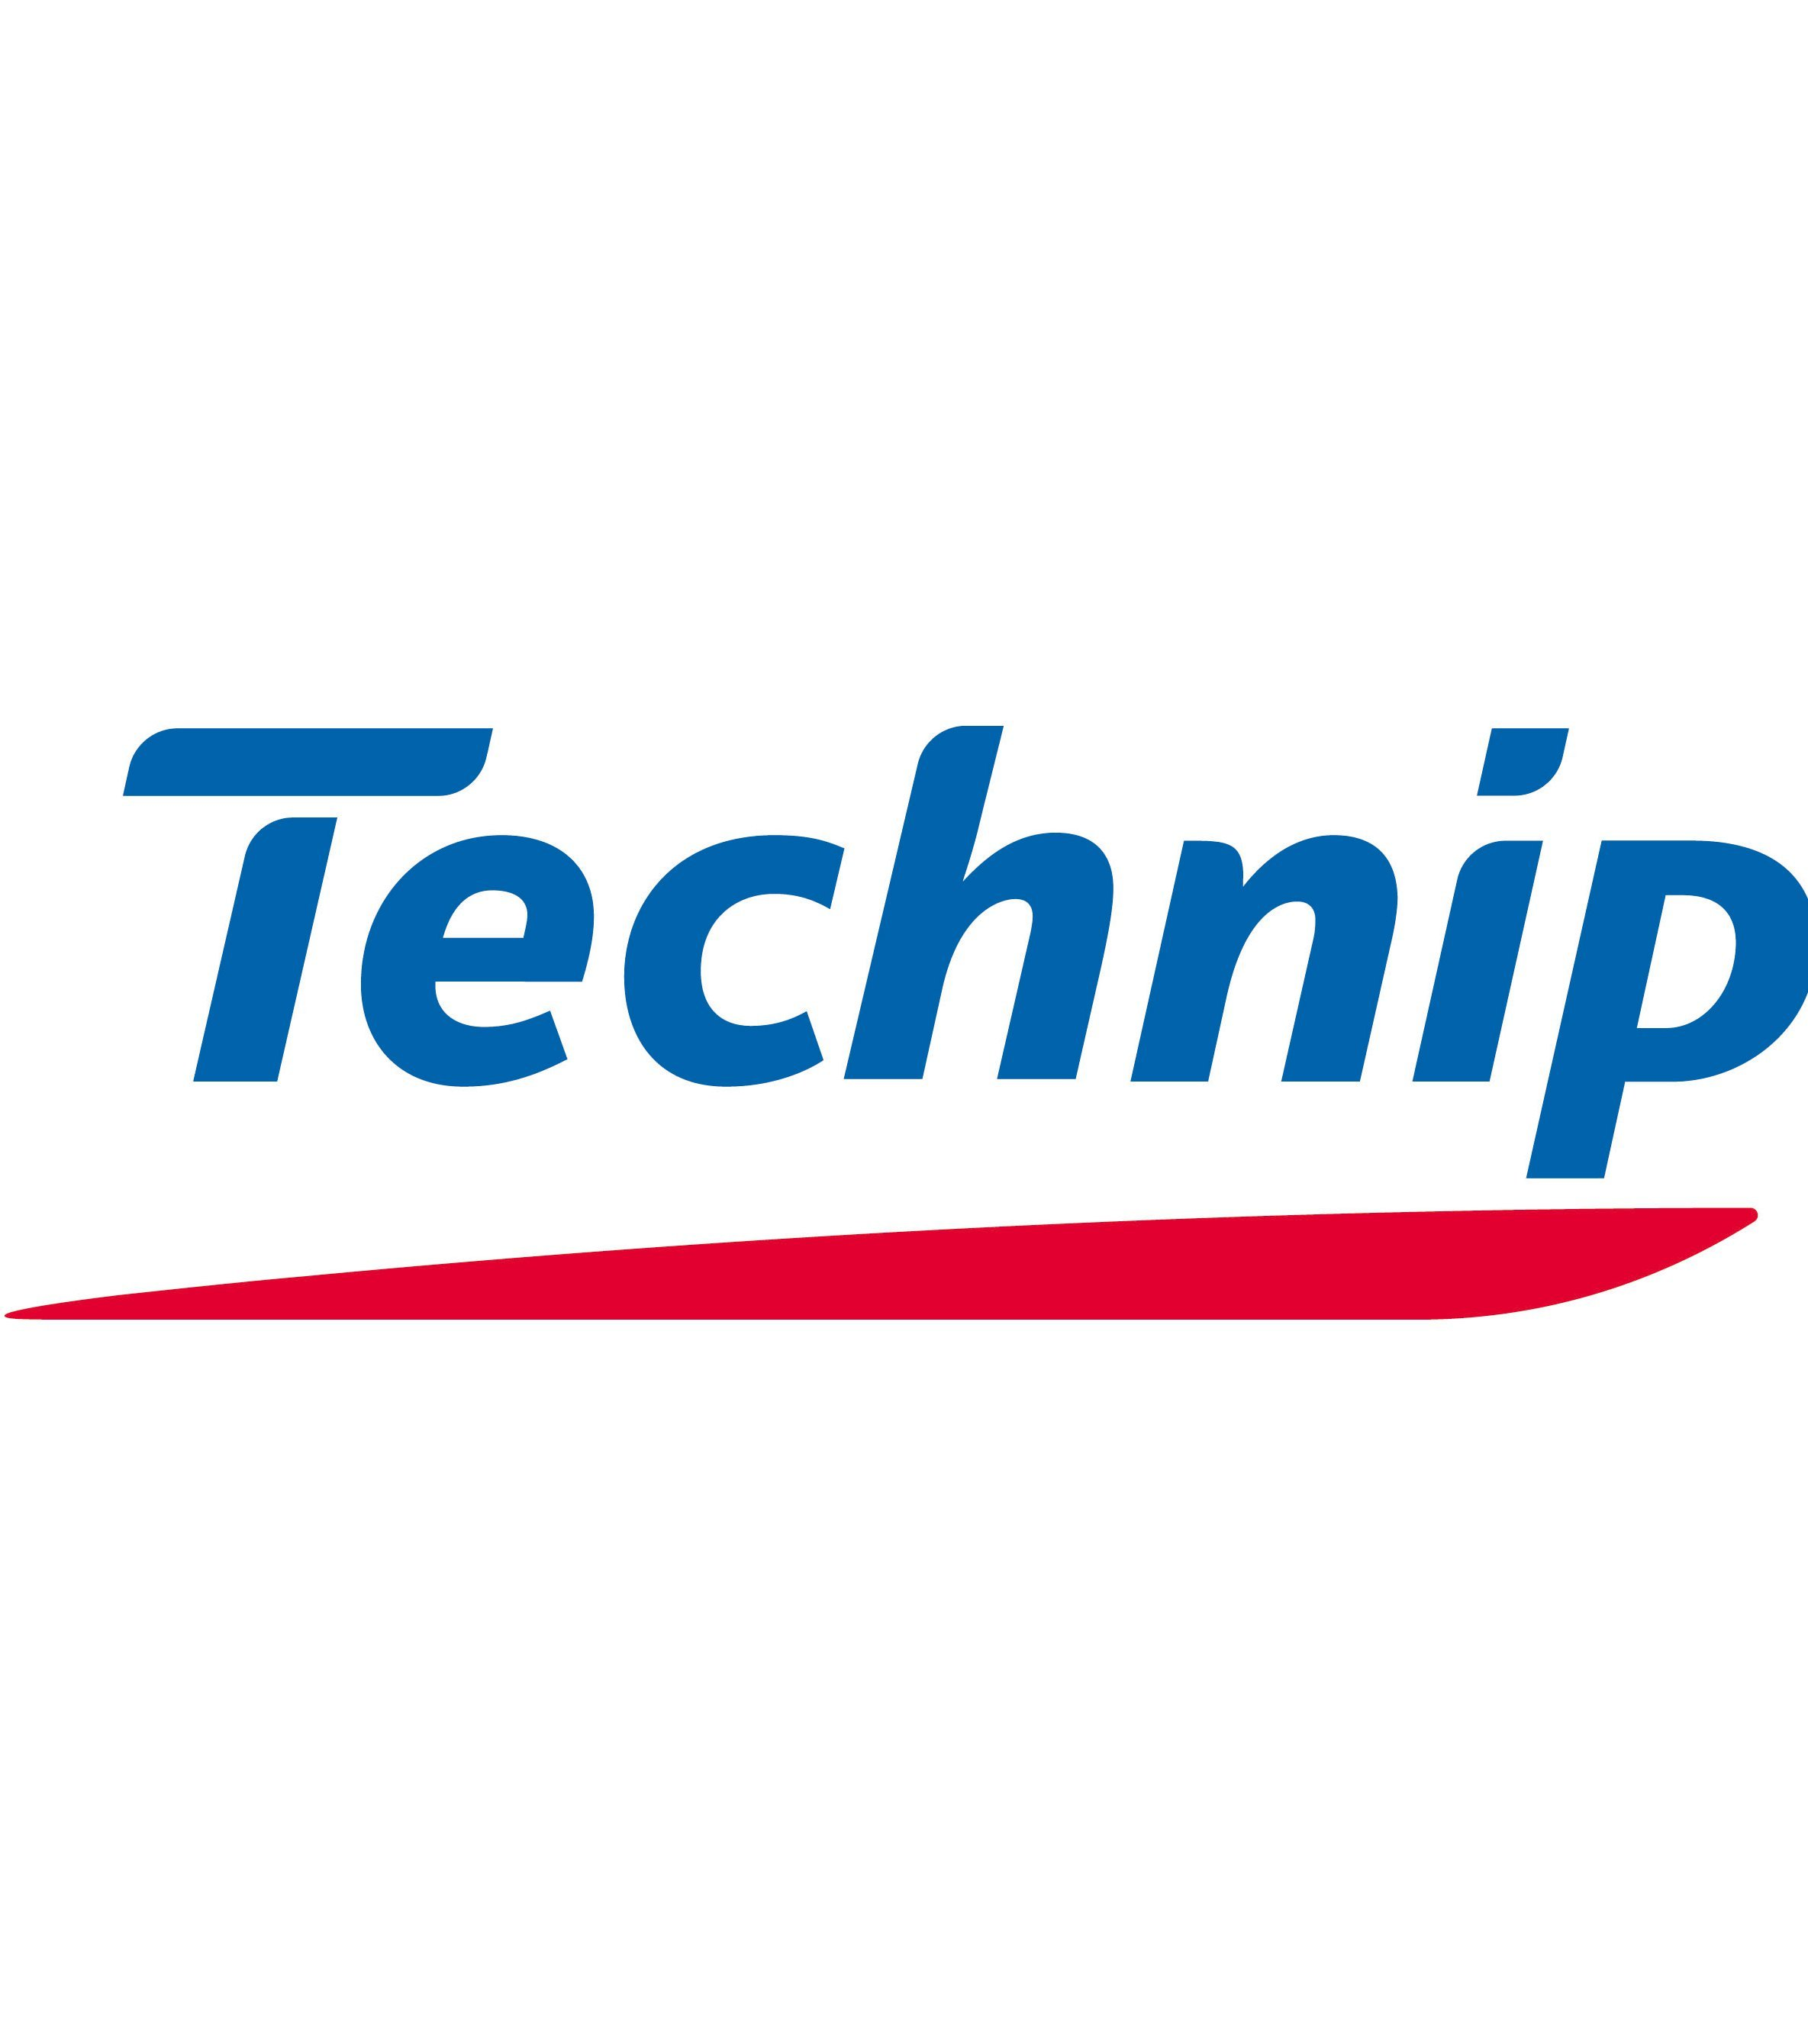 logo-technip_114082_wide